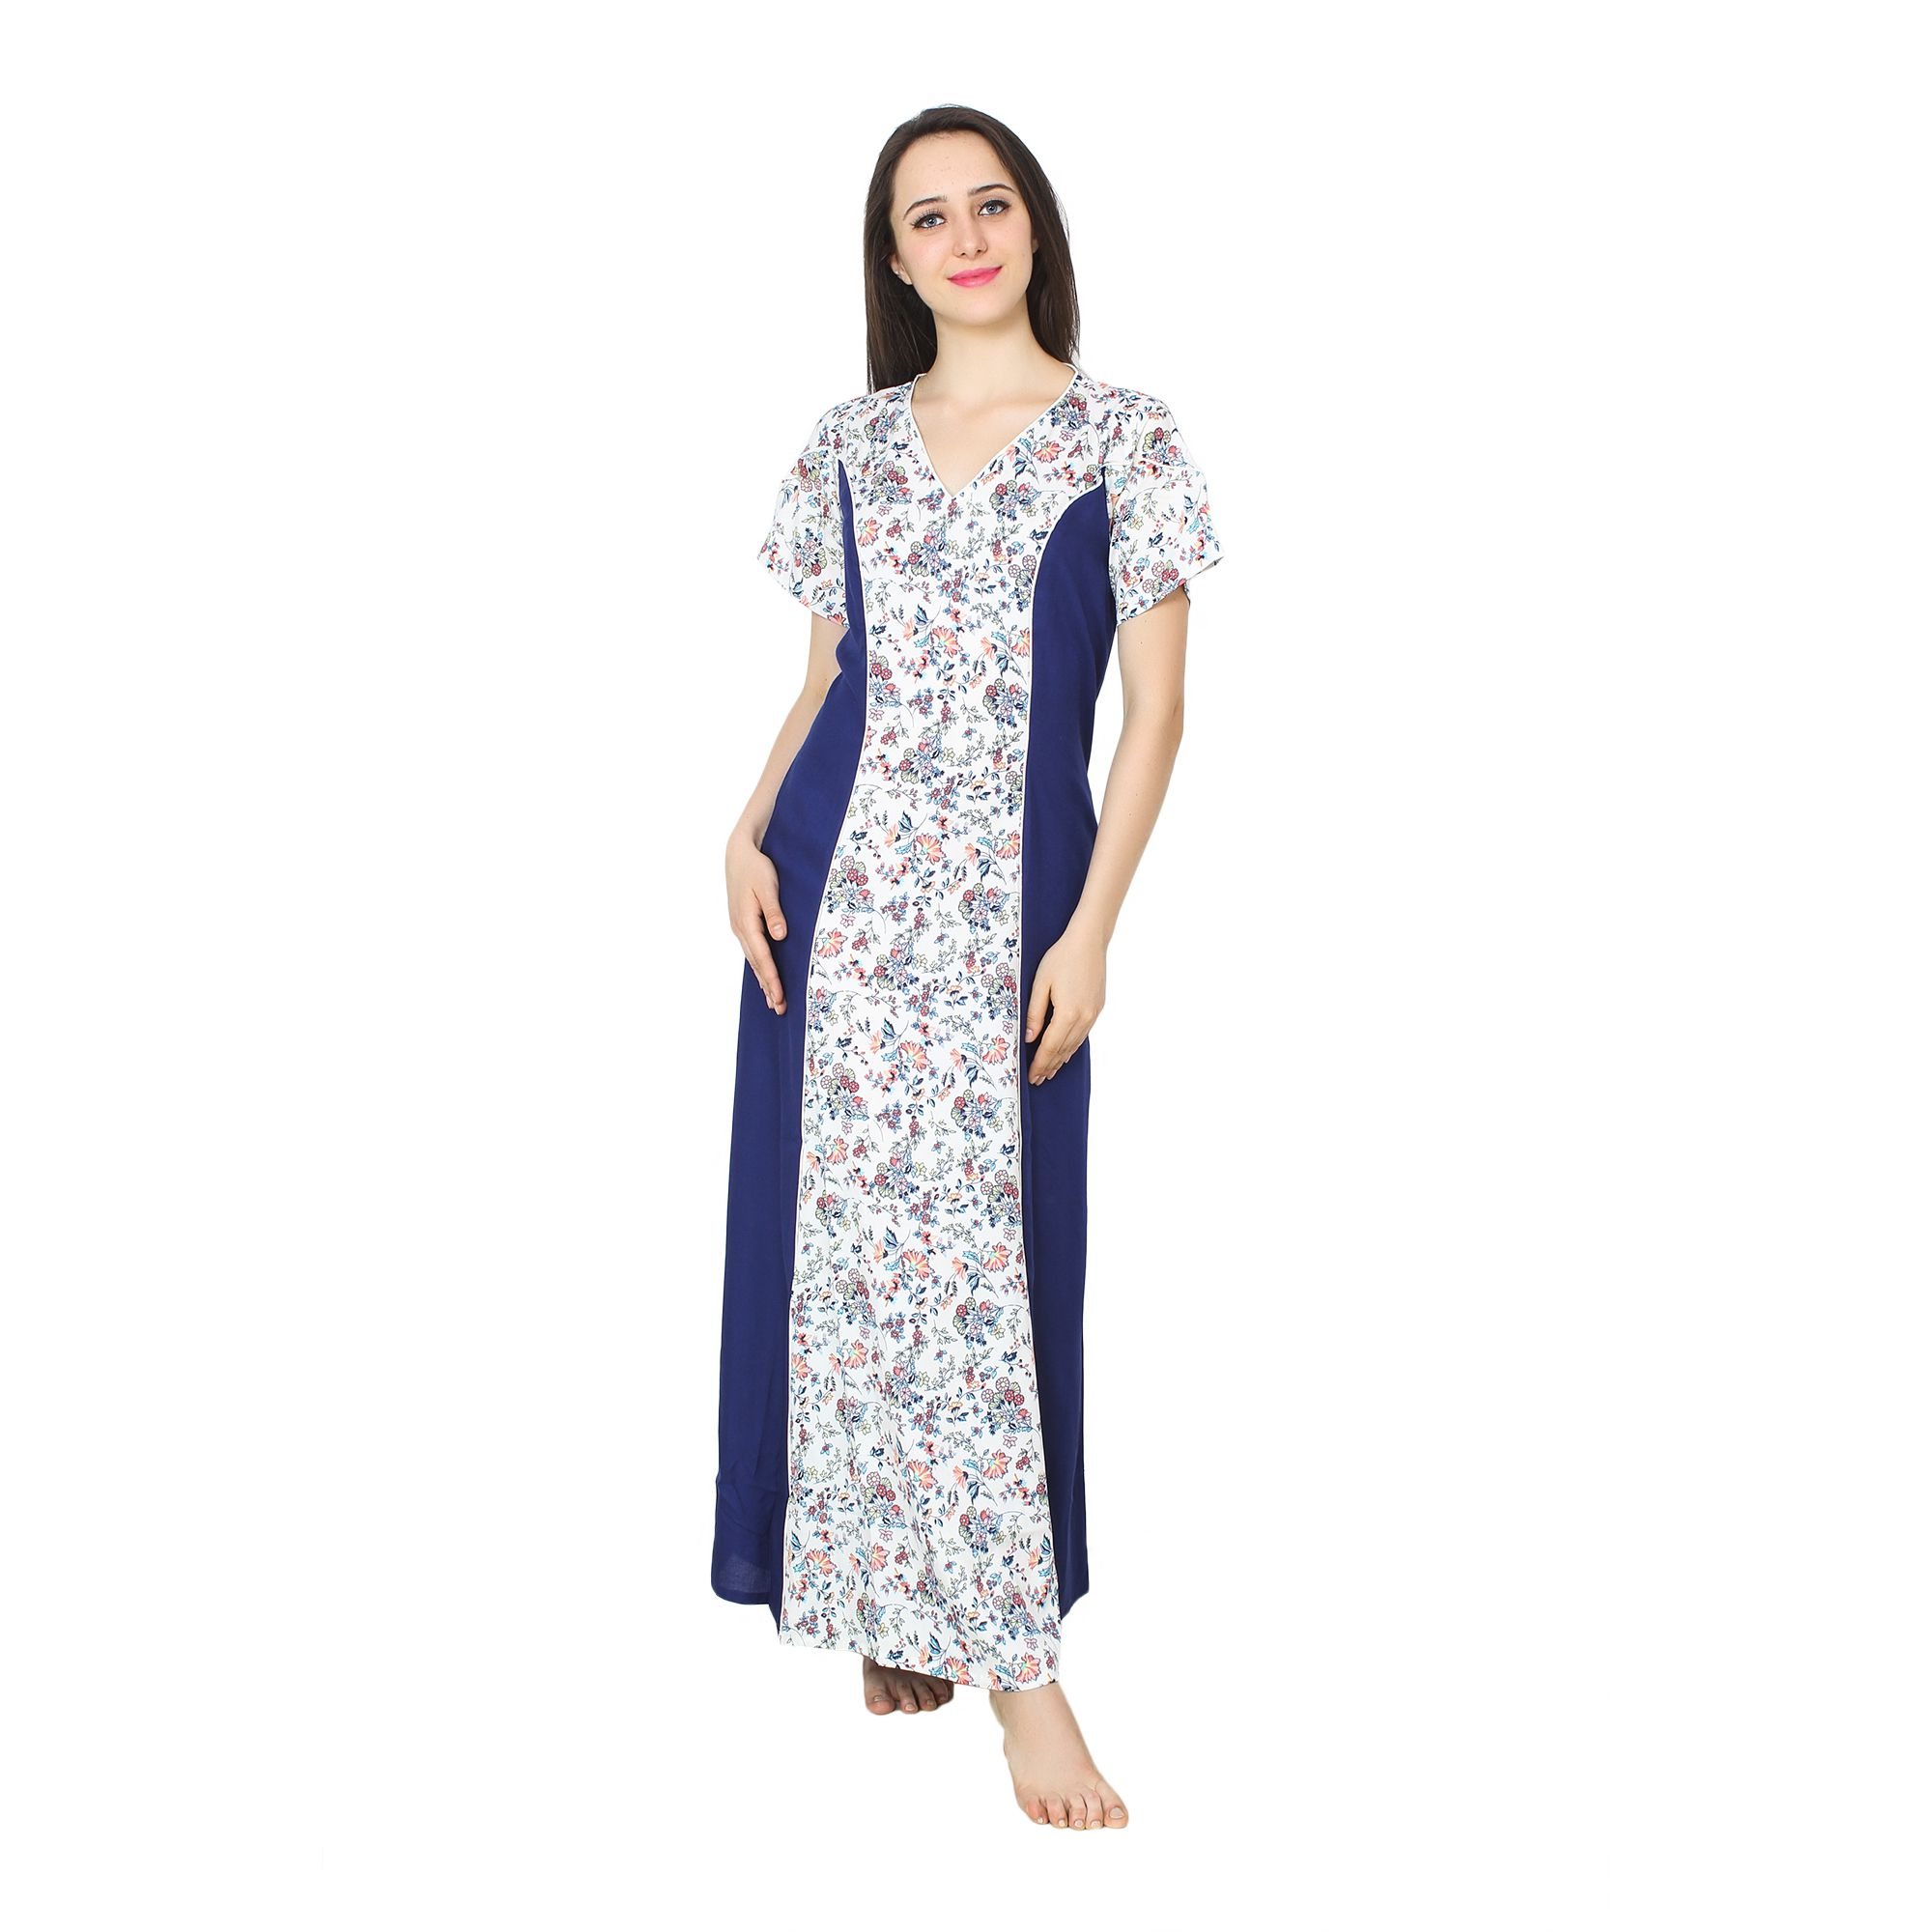 2864d959ad Buy Patrorna Viscose Nighty   Night Gowns - Multi Color Online at Best  Prices in India - Snapdeal